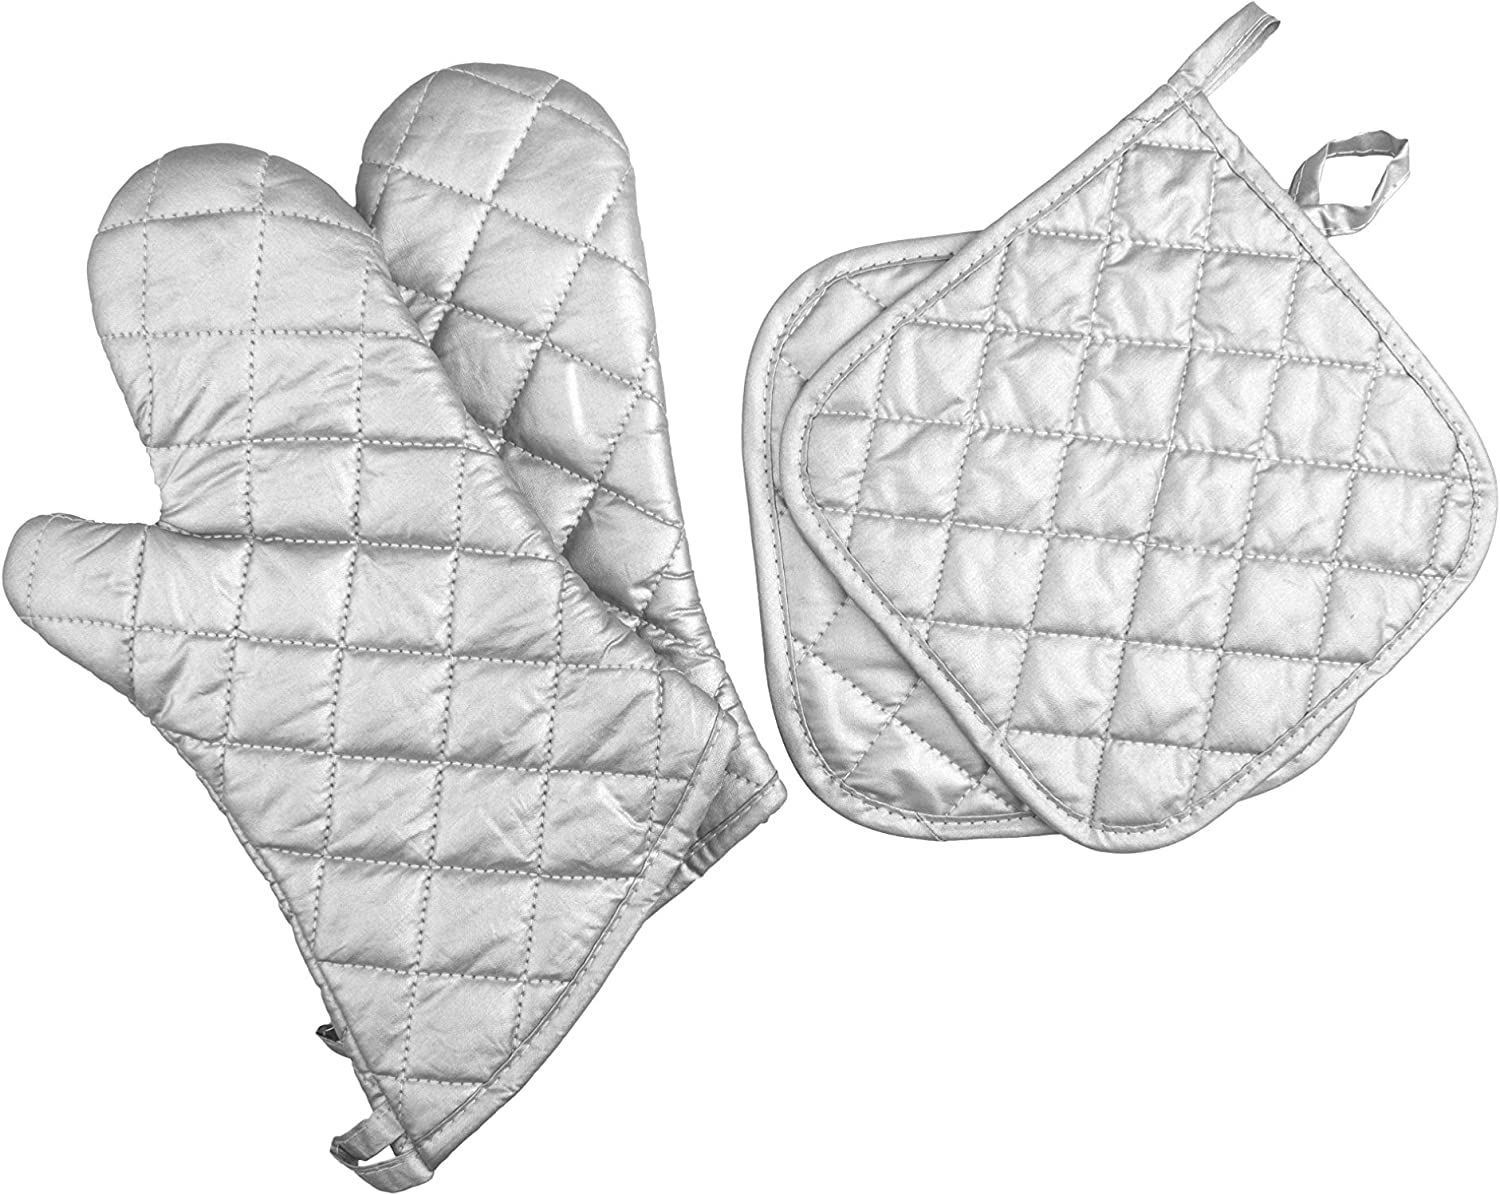 ARCLIBER Oven Mitts and Potholders,Quilted Cotton Lining 15 Inch Oven Gloves,Heat Resistant for Kitchen Cooking,Grilling,Backing,Set of 4,Silver